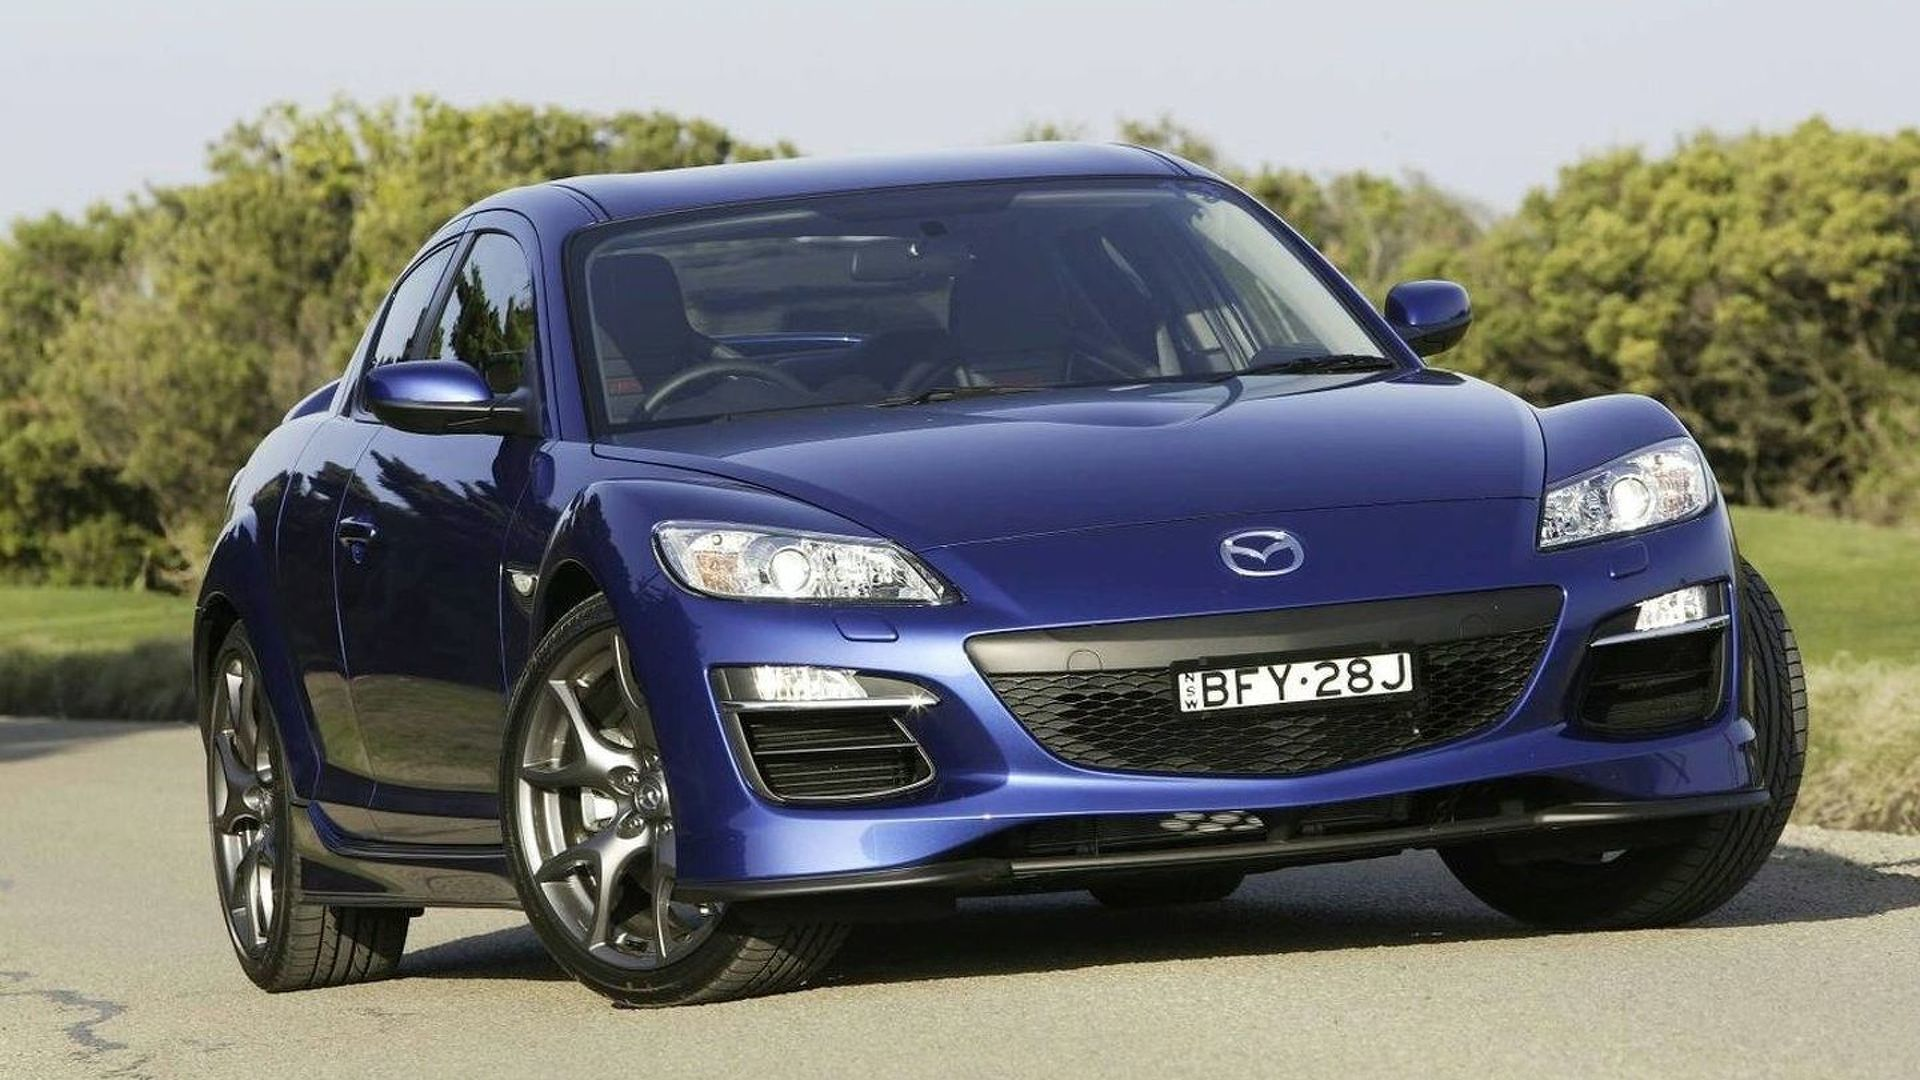 Mazda RX-7 coming in 2015 or 2016 with a new rotary engine - report